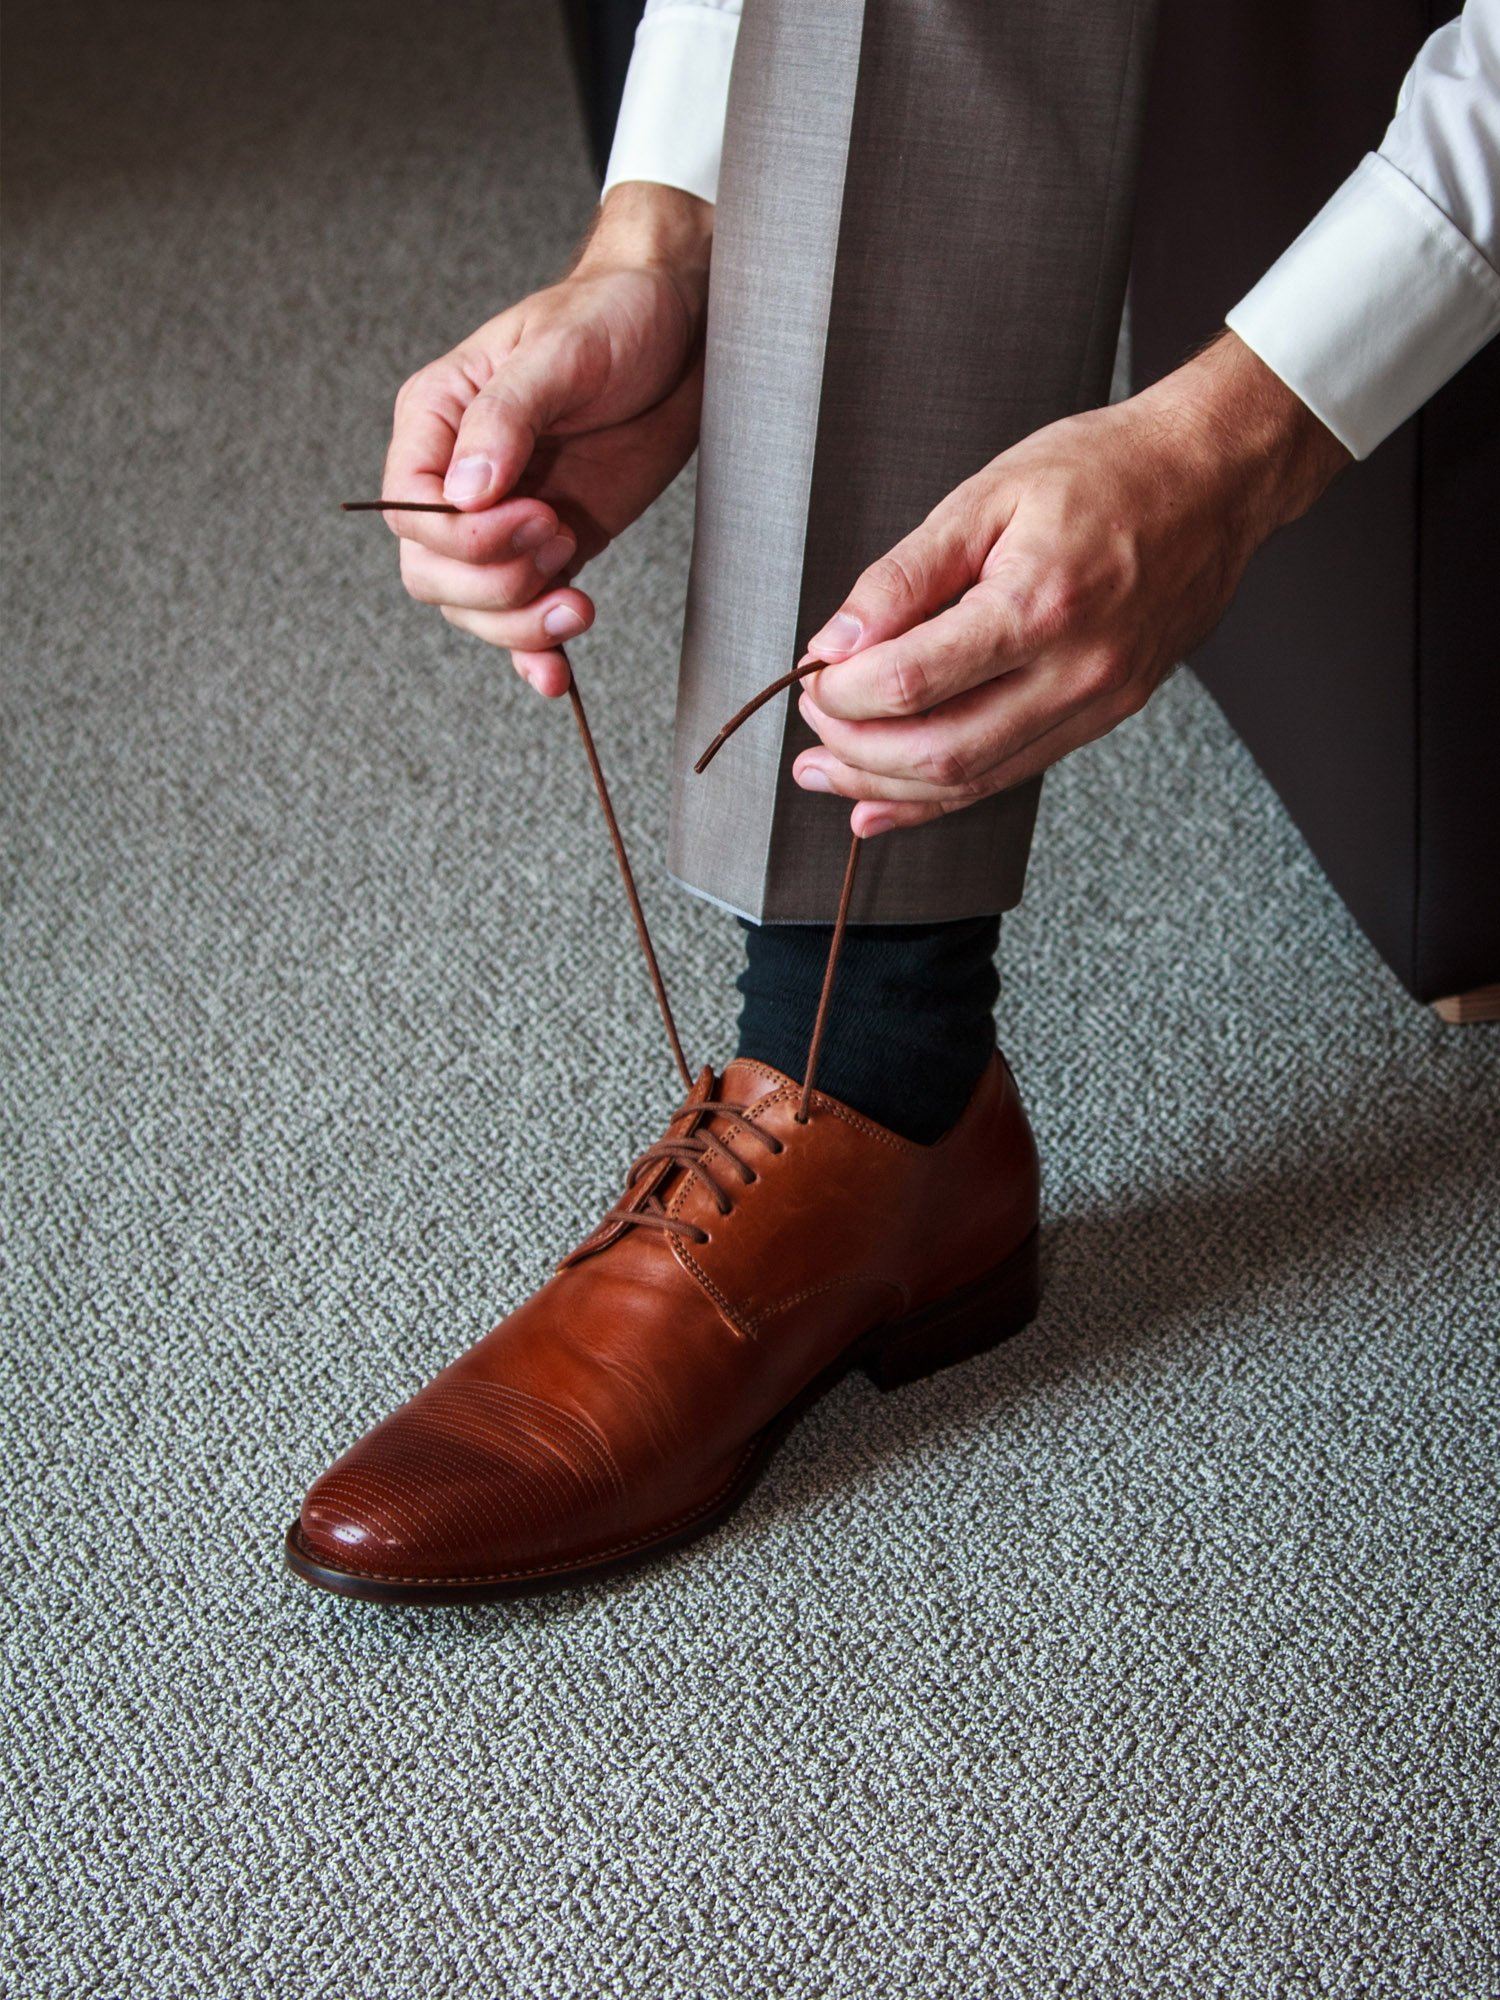 Jovitec Waxed Oxford Shoelaces Cotton Round Waxed Shoe Laces for Dress Shoes, 9 Colors by Jovitec (Image #7)